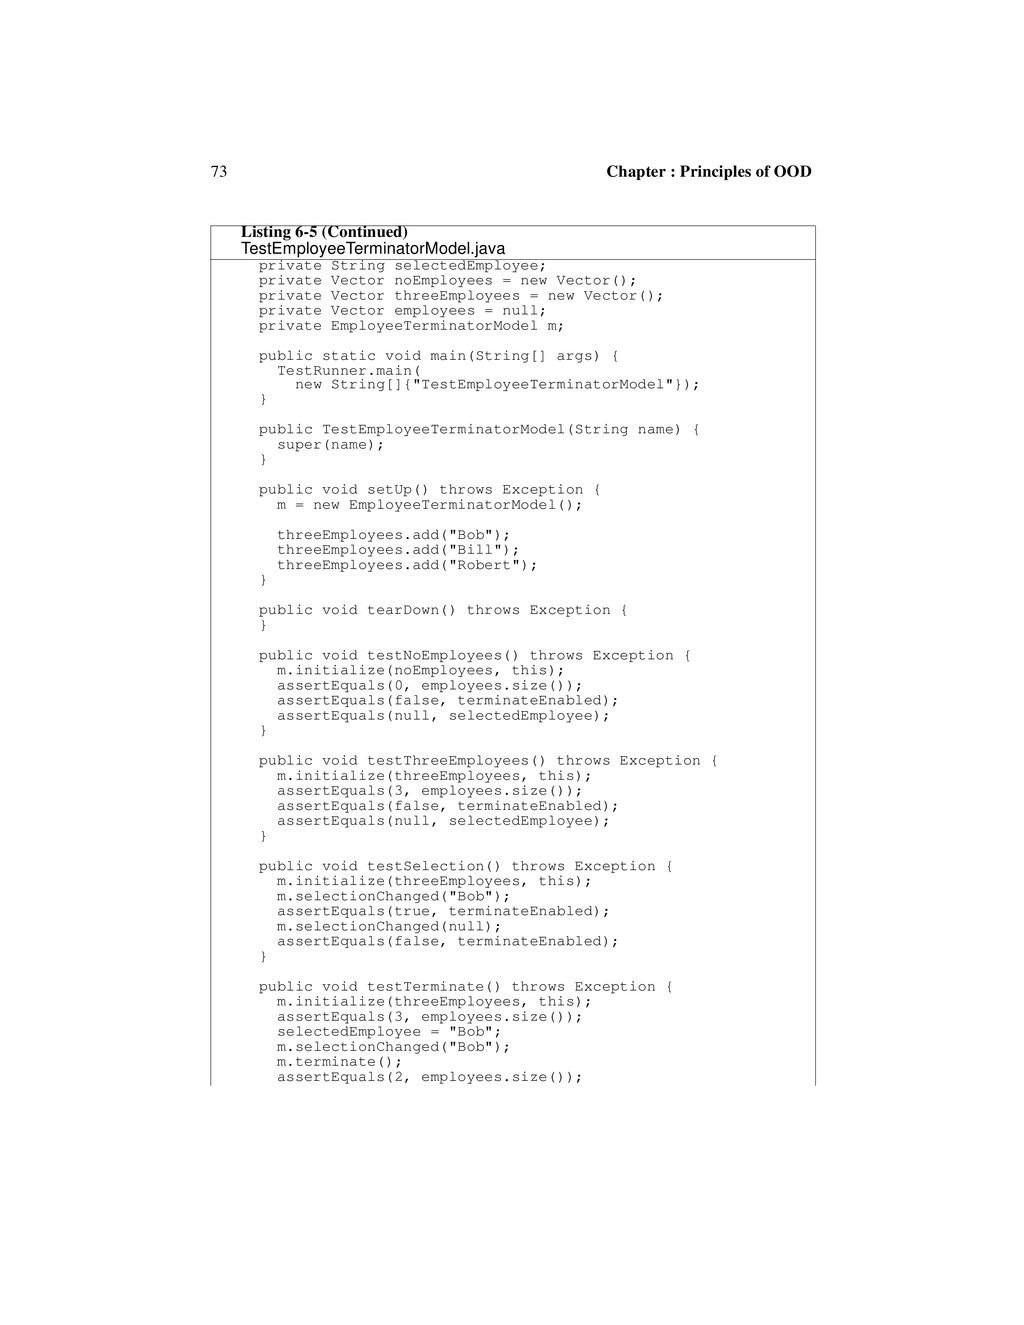 73 Chapter : Principles of OOD private String s...